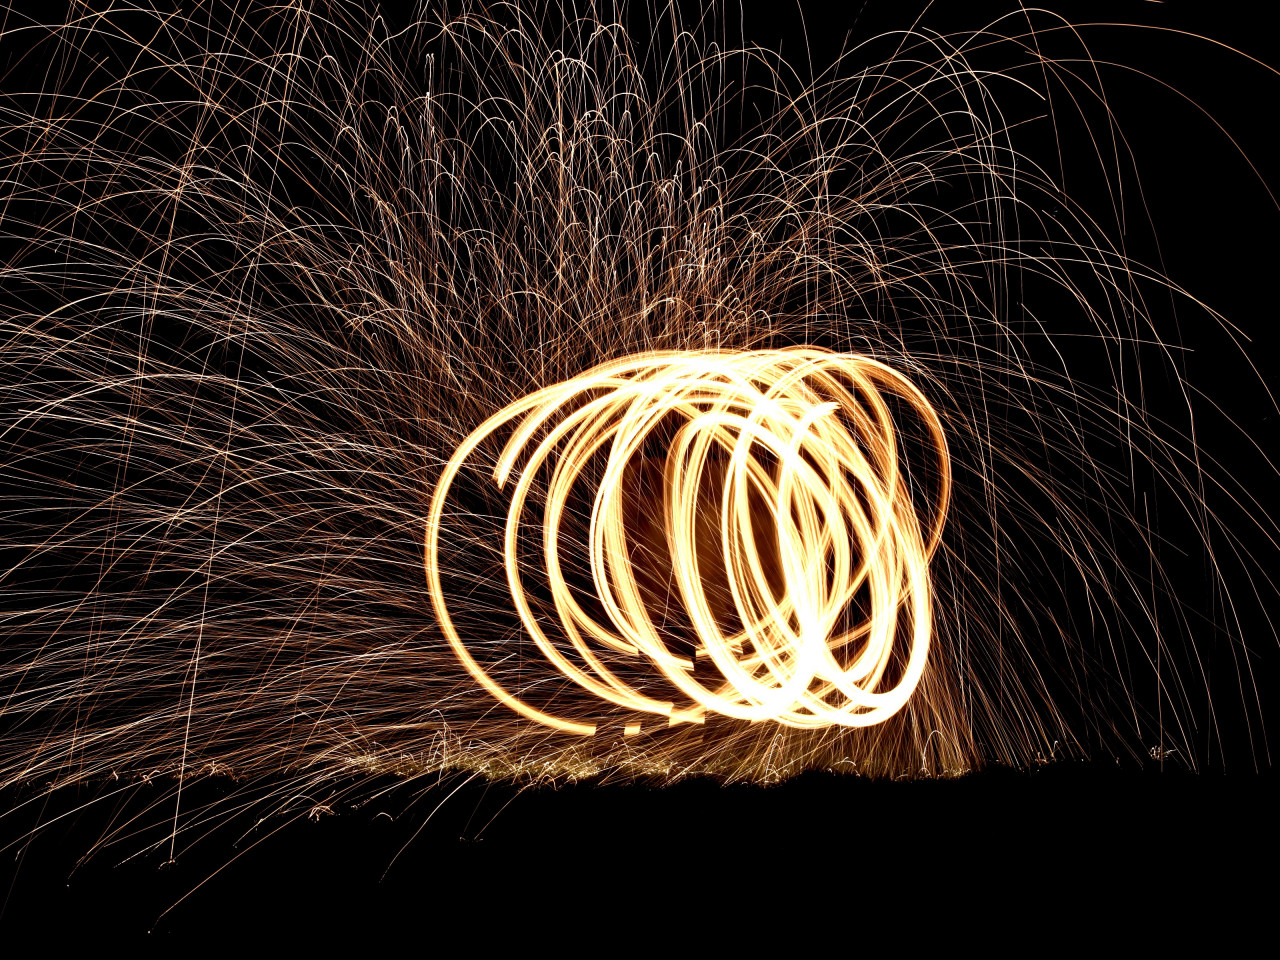 Spinning wire wool wallpaper 1280x960